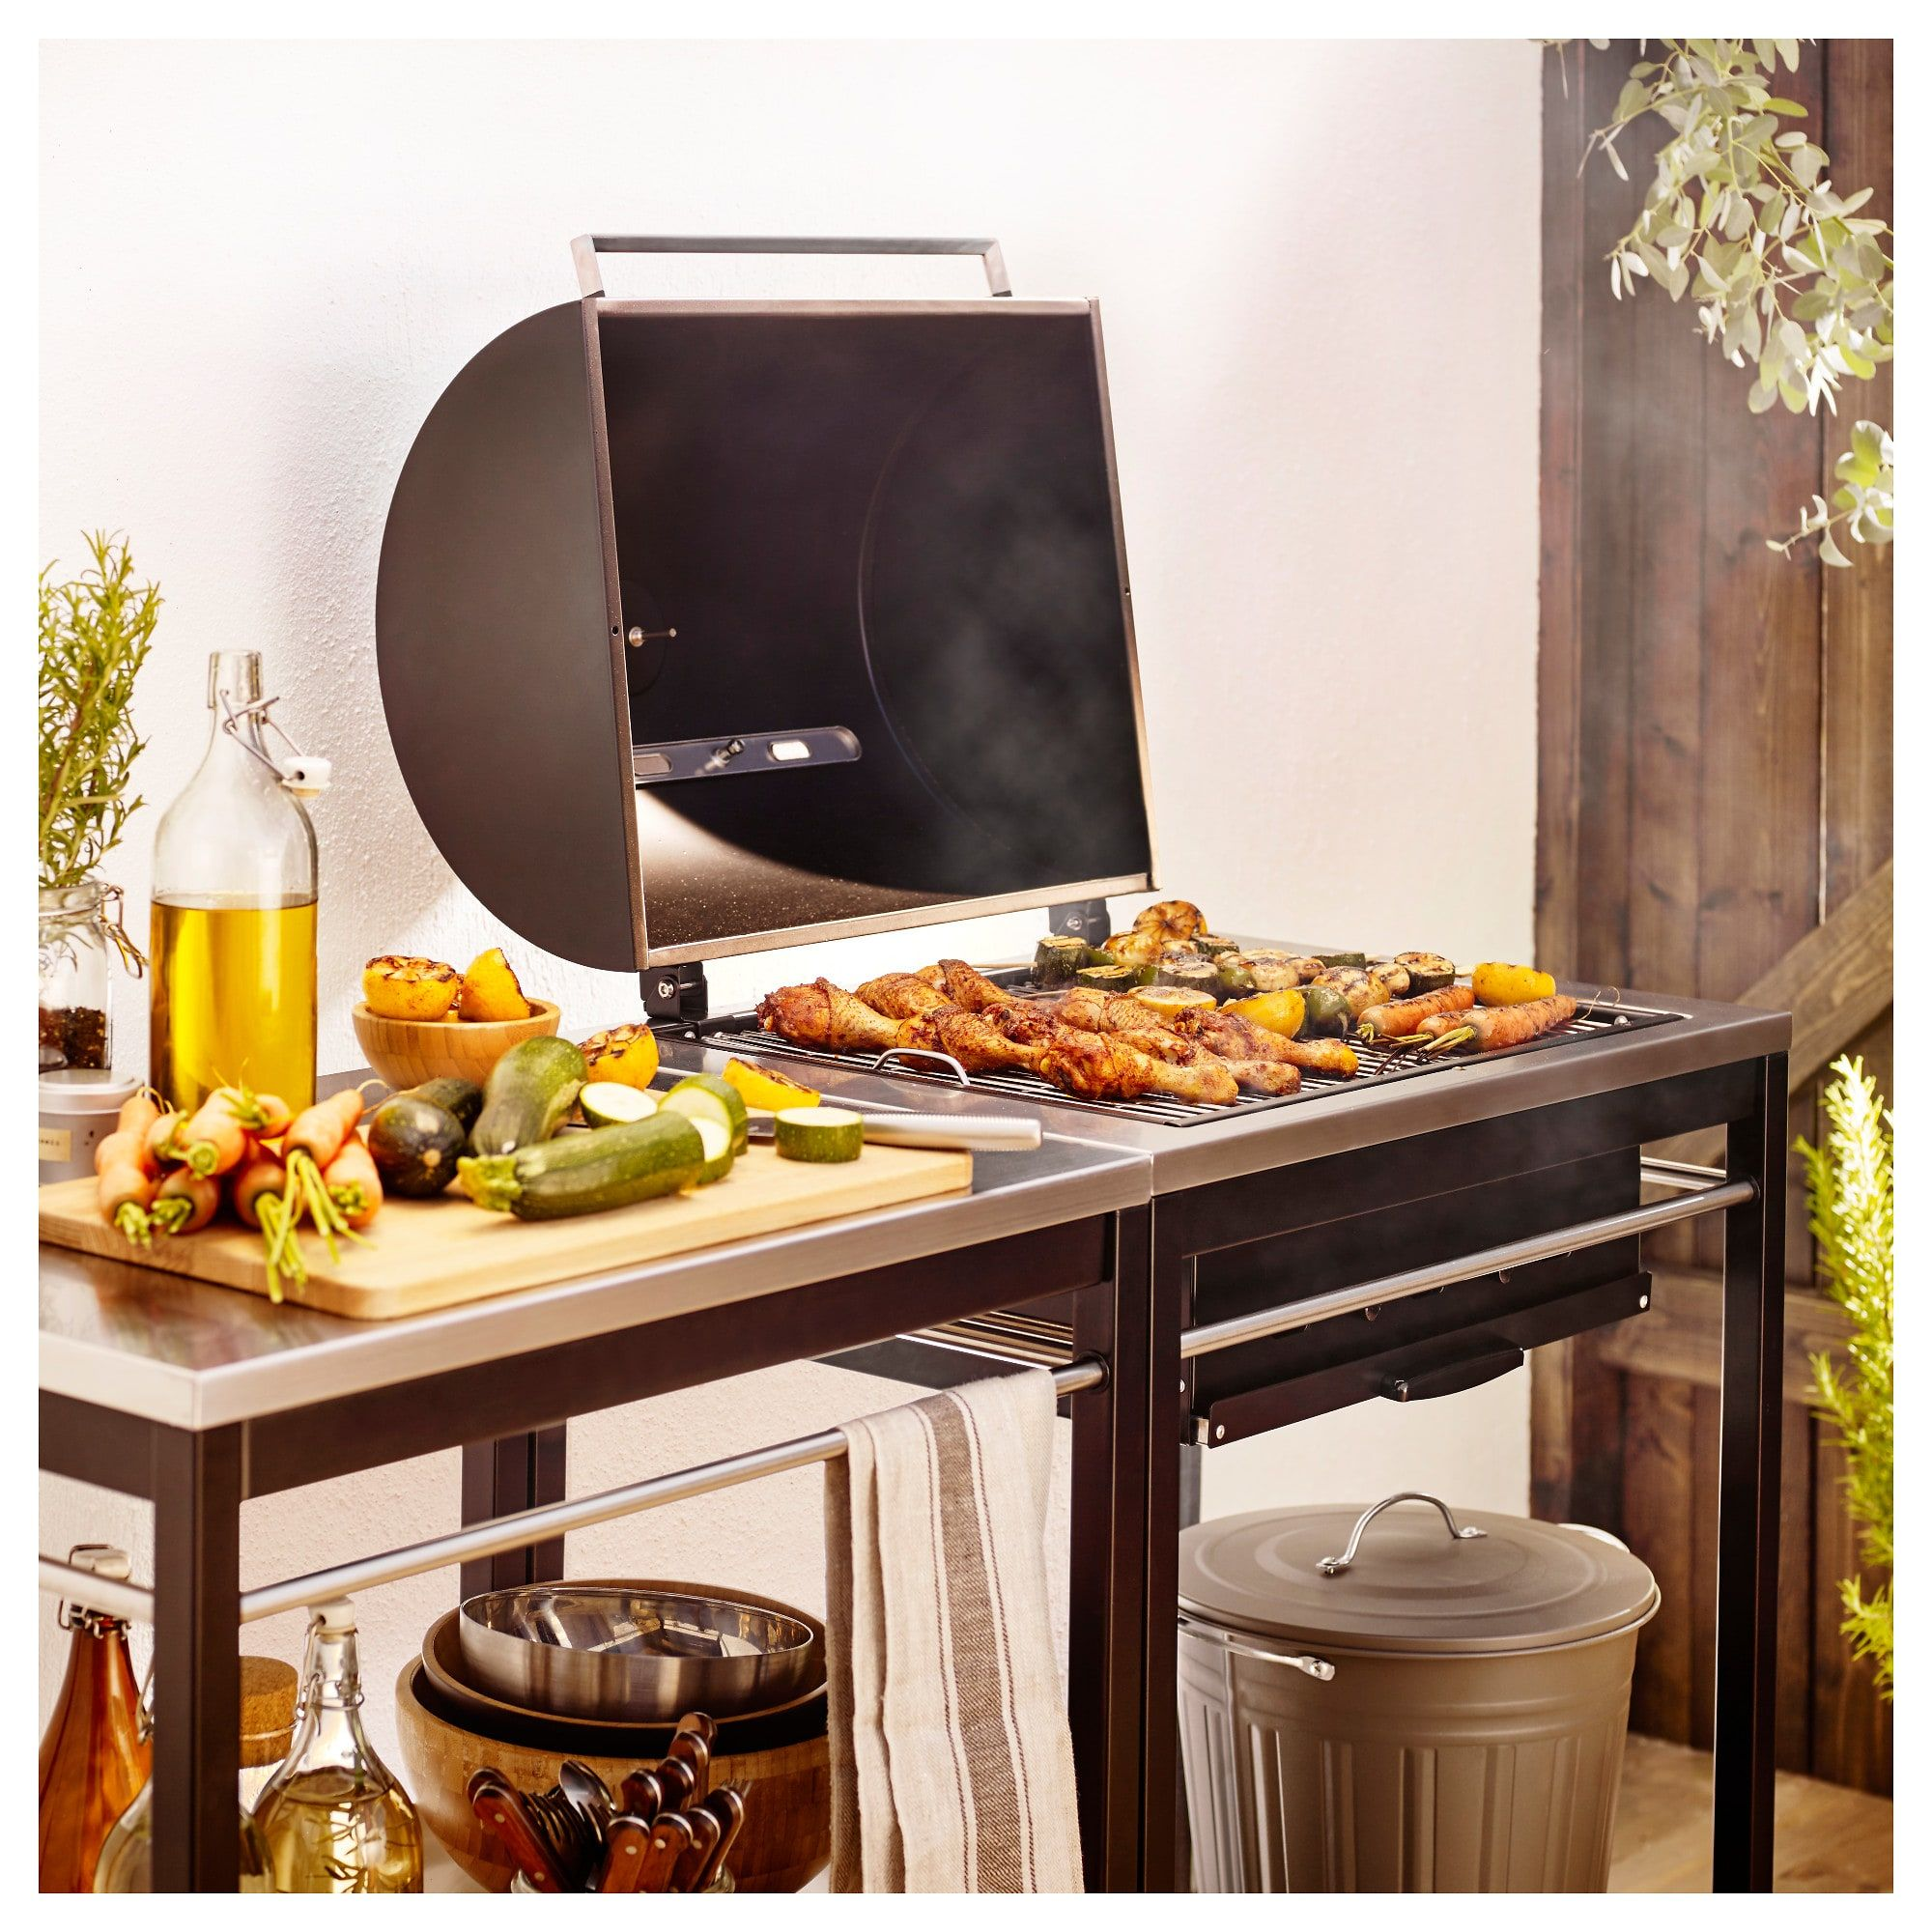 klasen charcoal barbecue with cart stainless steel in 2019 charcoal grill ikea ikea outdoor on outdoor kitchen on wheels id=62082